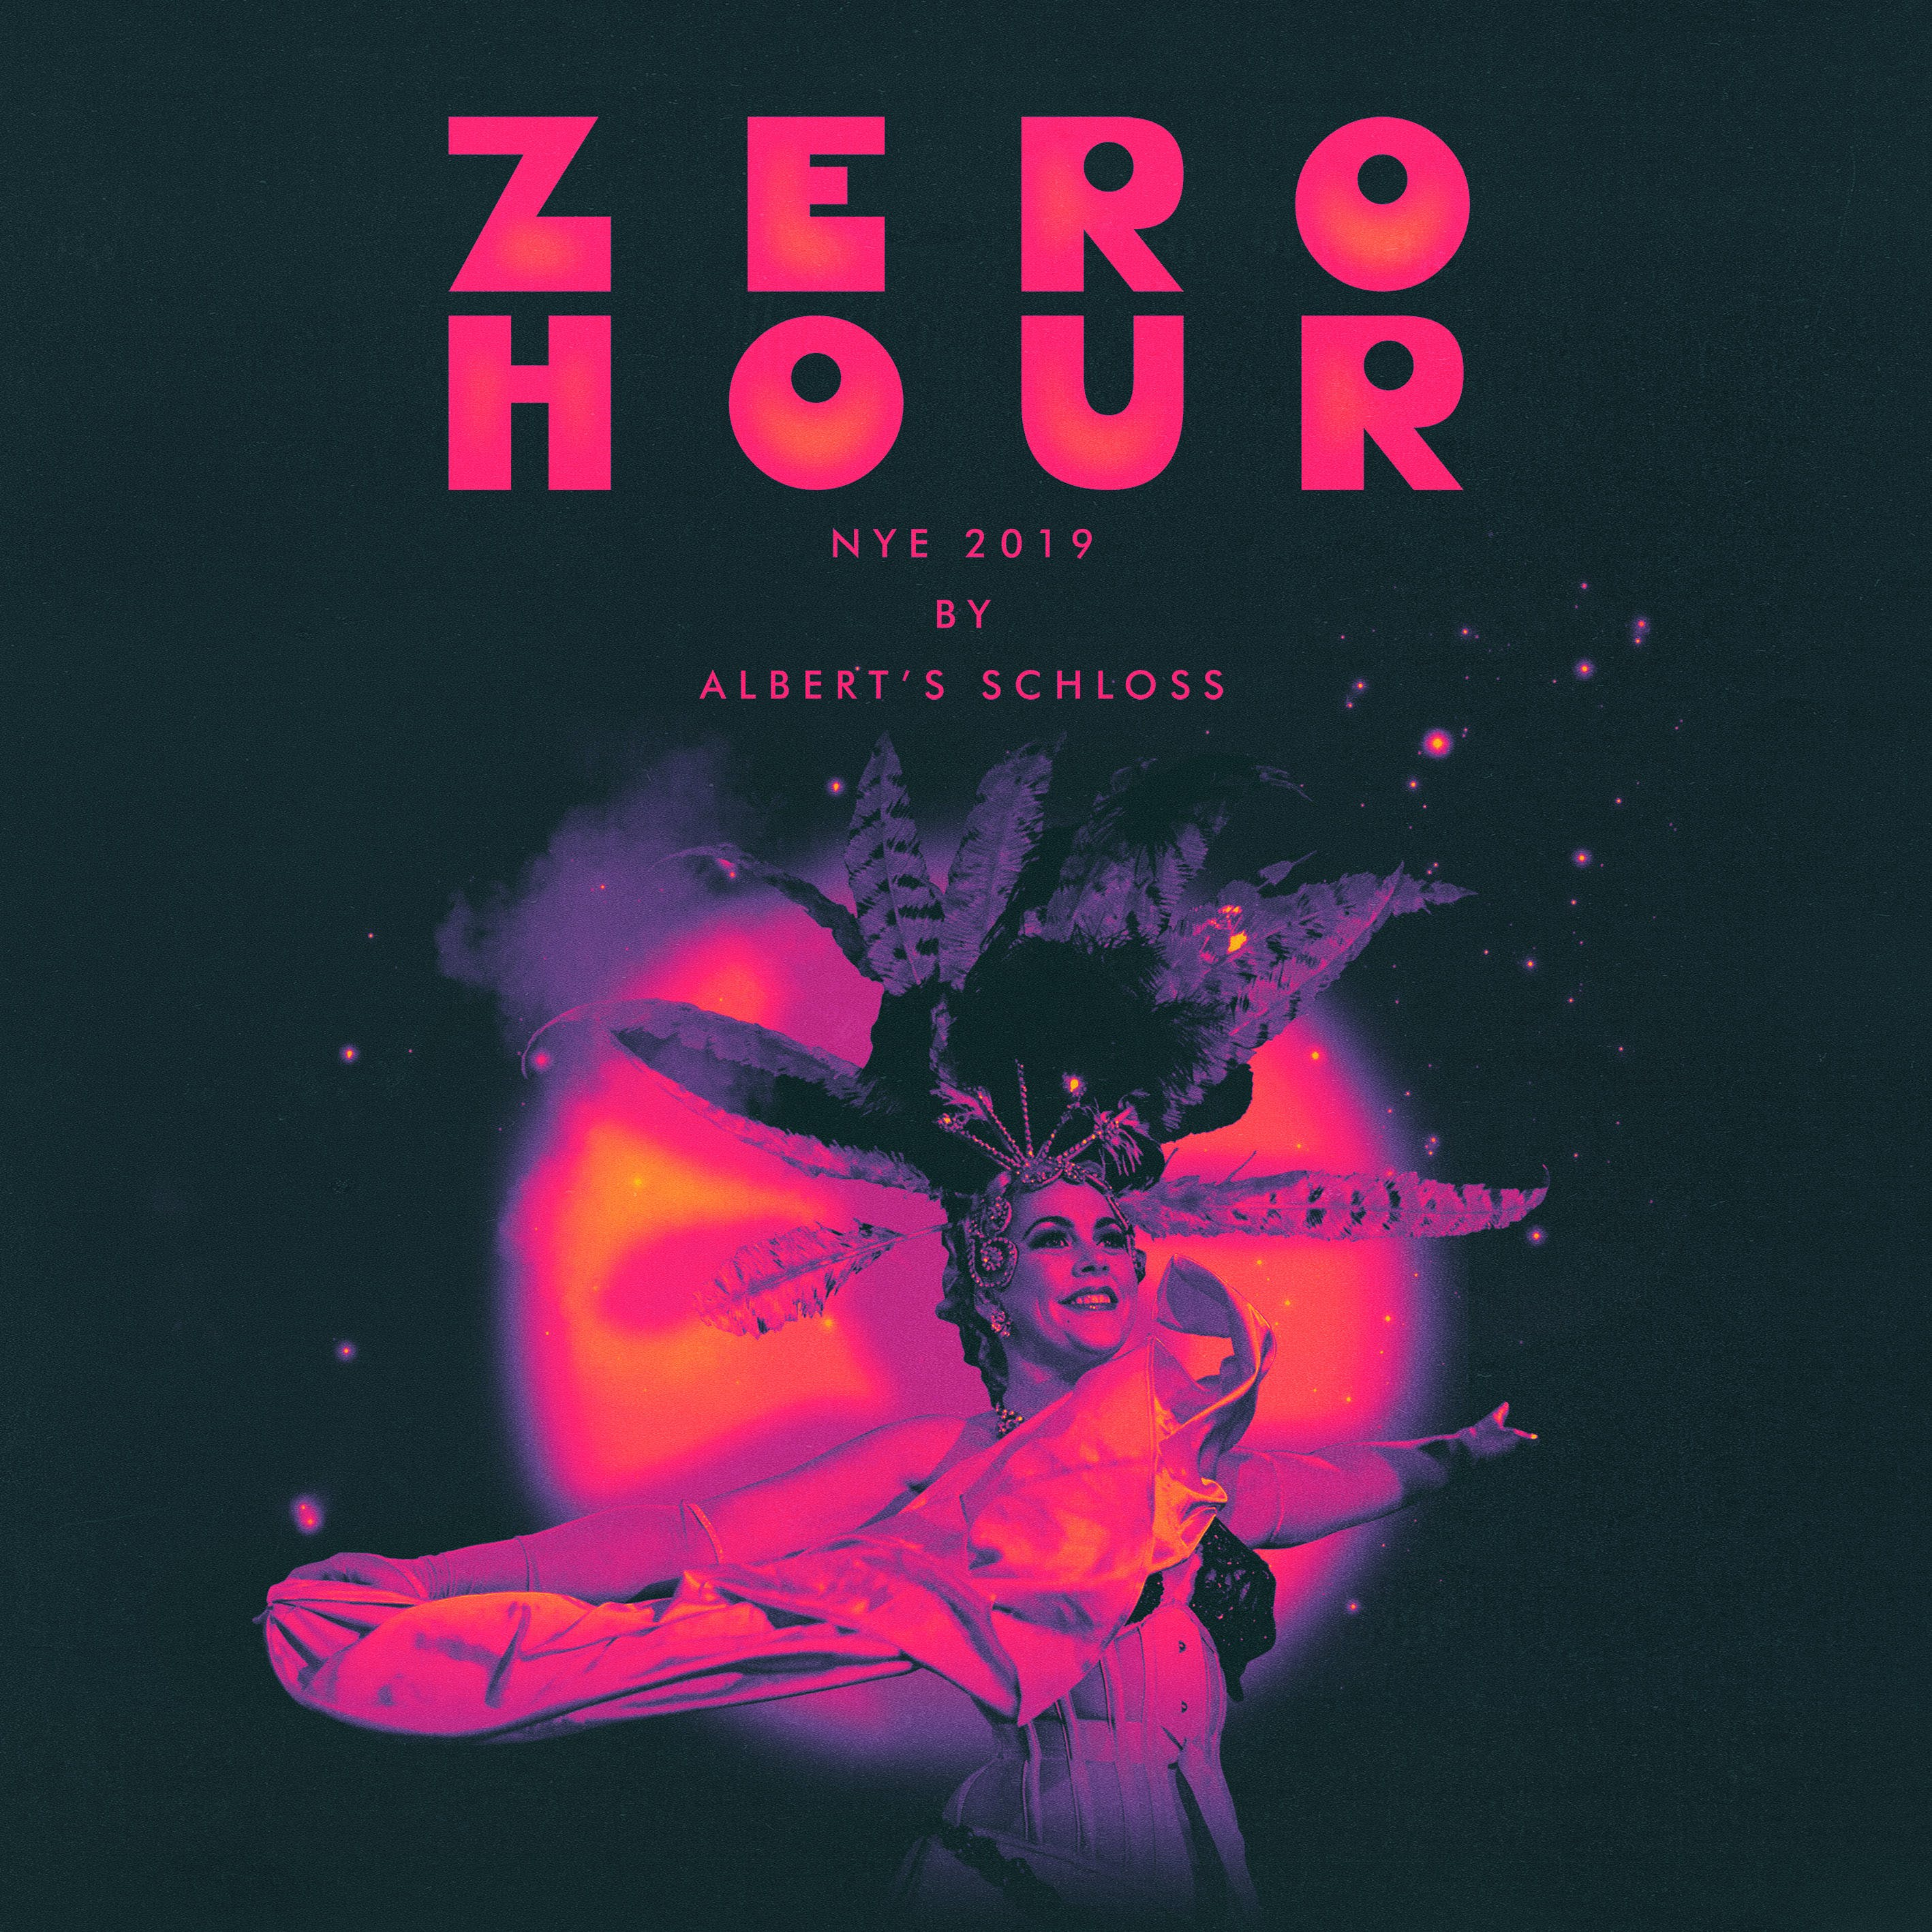 NEW YEAR'S EVE: THE ZERO HOUR